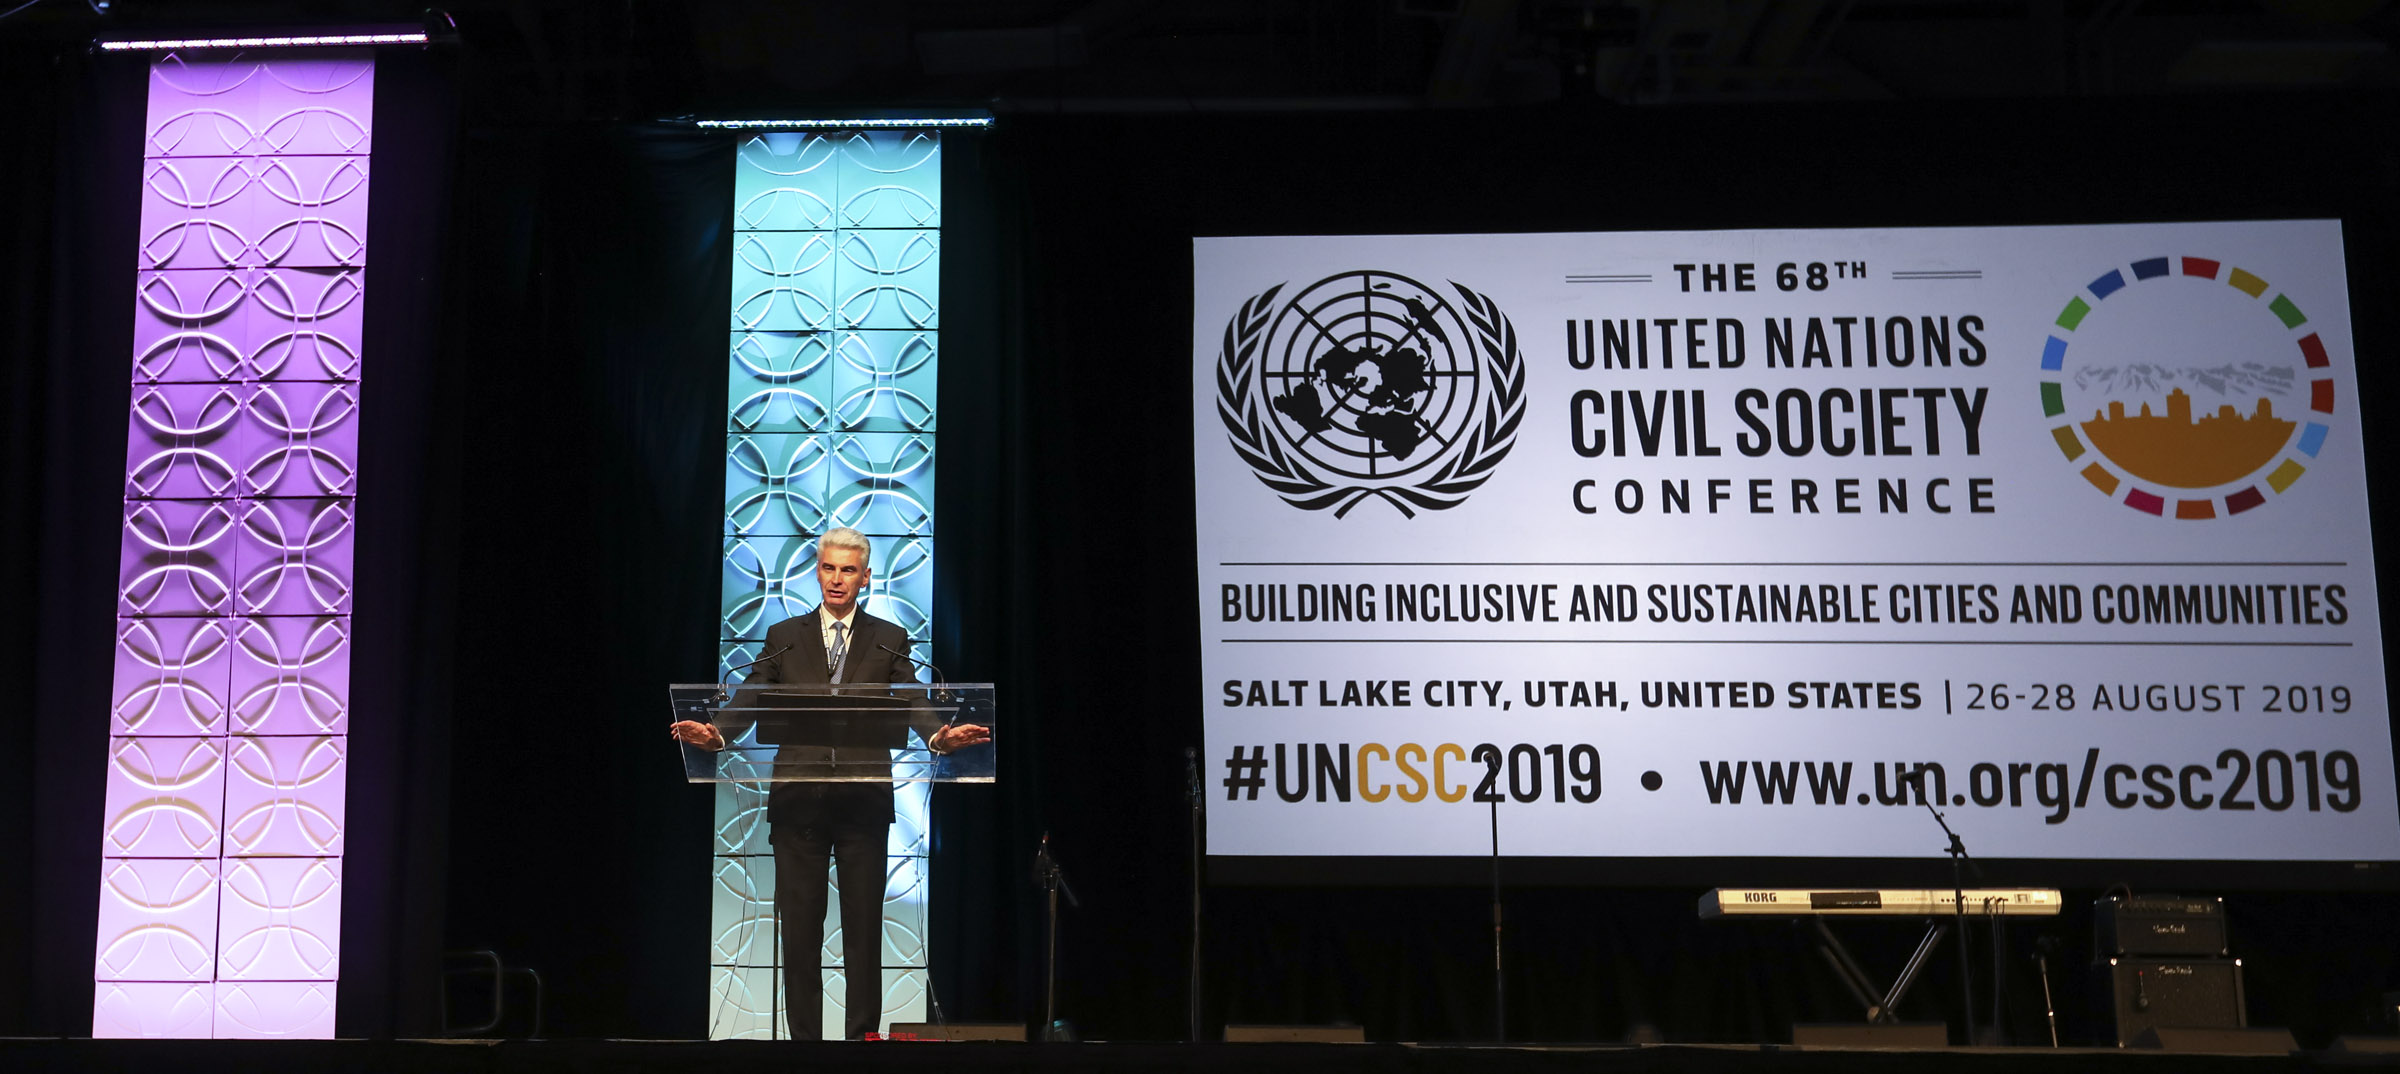 Bishop Gérald Caussé, Presiding Bishop of The Church of Jesus Christ of Latter-day Saints, speaks during the closing plenary at the 68th United Nations Civil Society Conference in Salt Lake City on Wednesday, Aug. 28, 2019